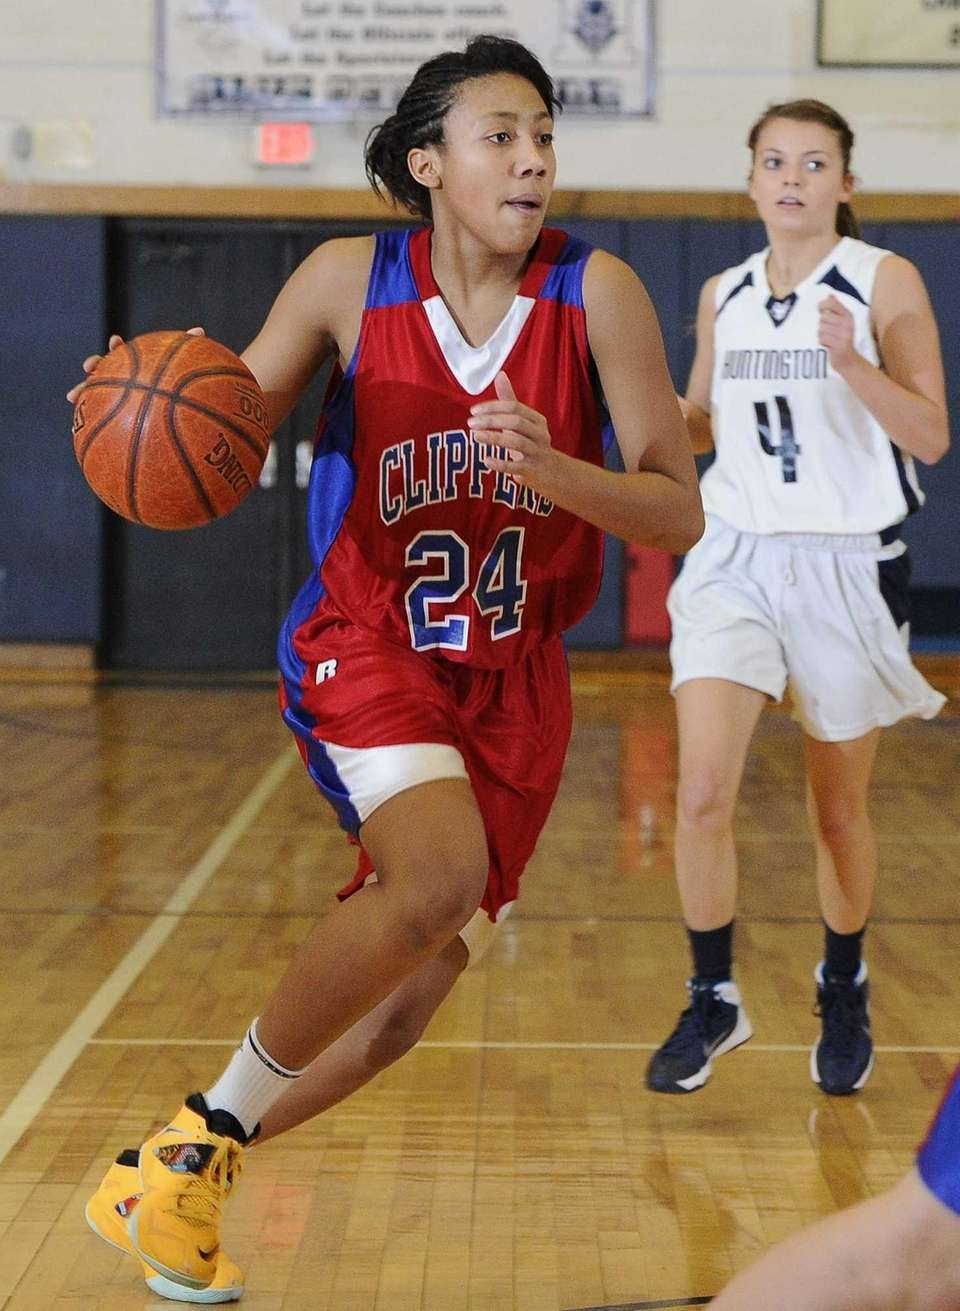 Bellport forward Arella Guirantes drives the ball against